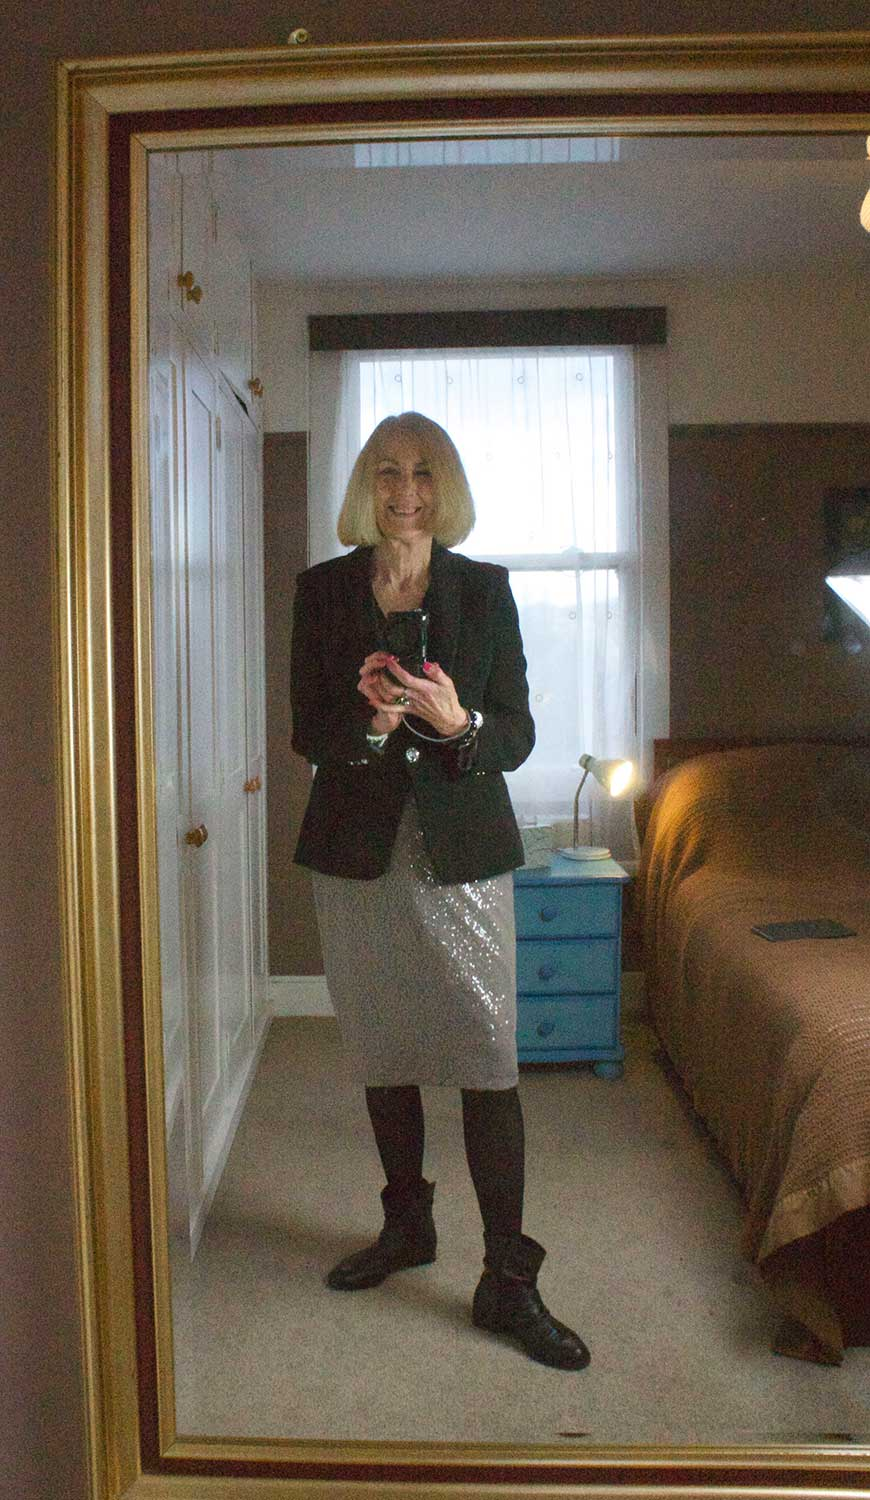 Film night outfit – February 2015